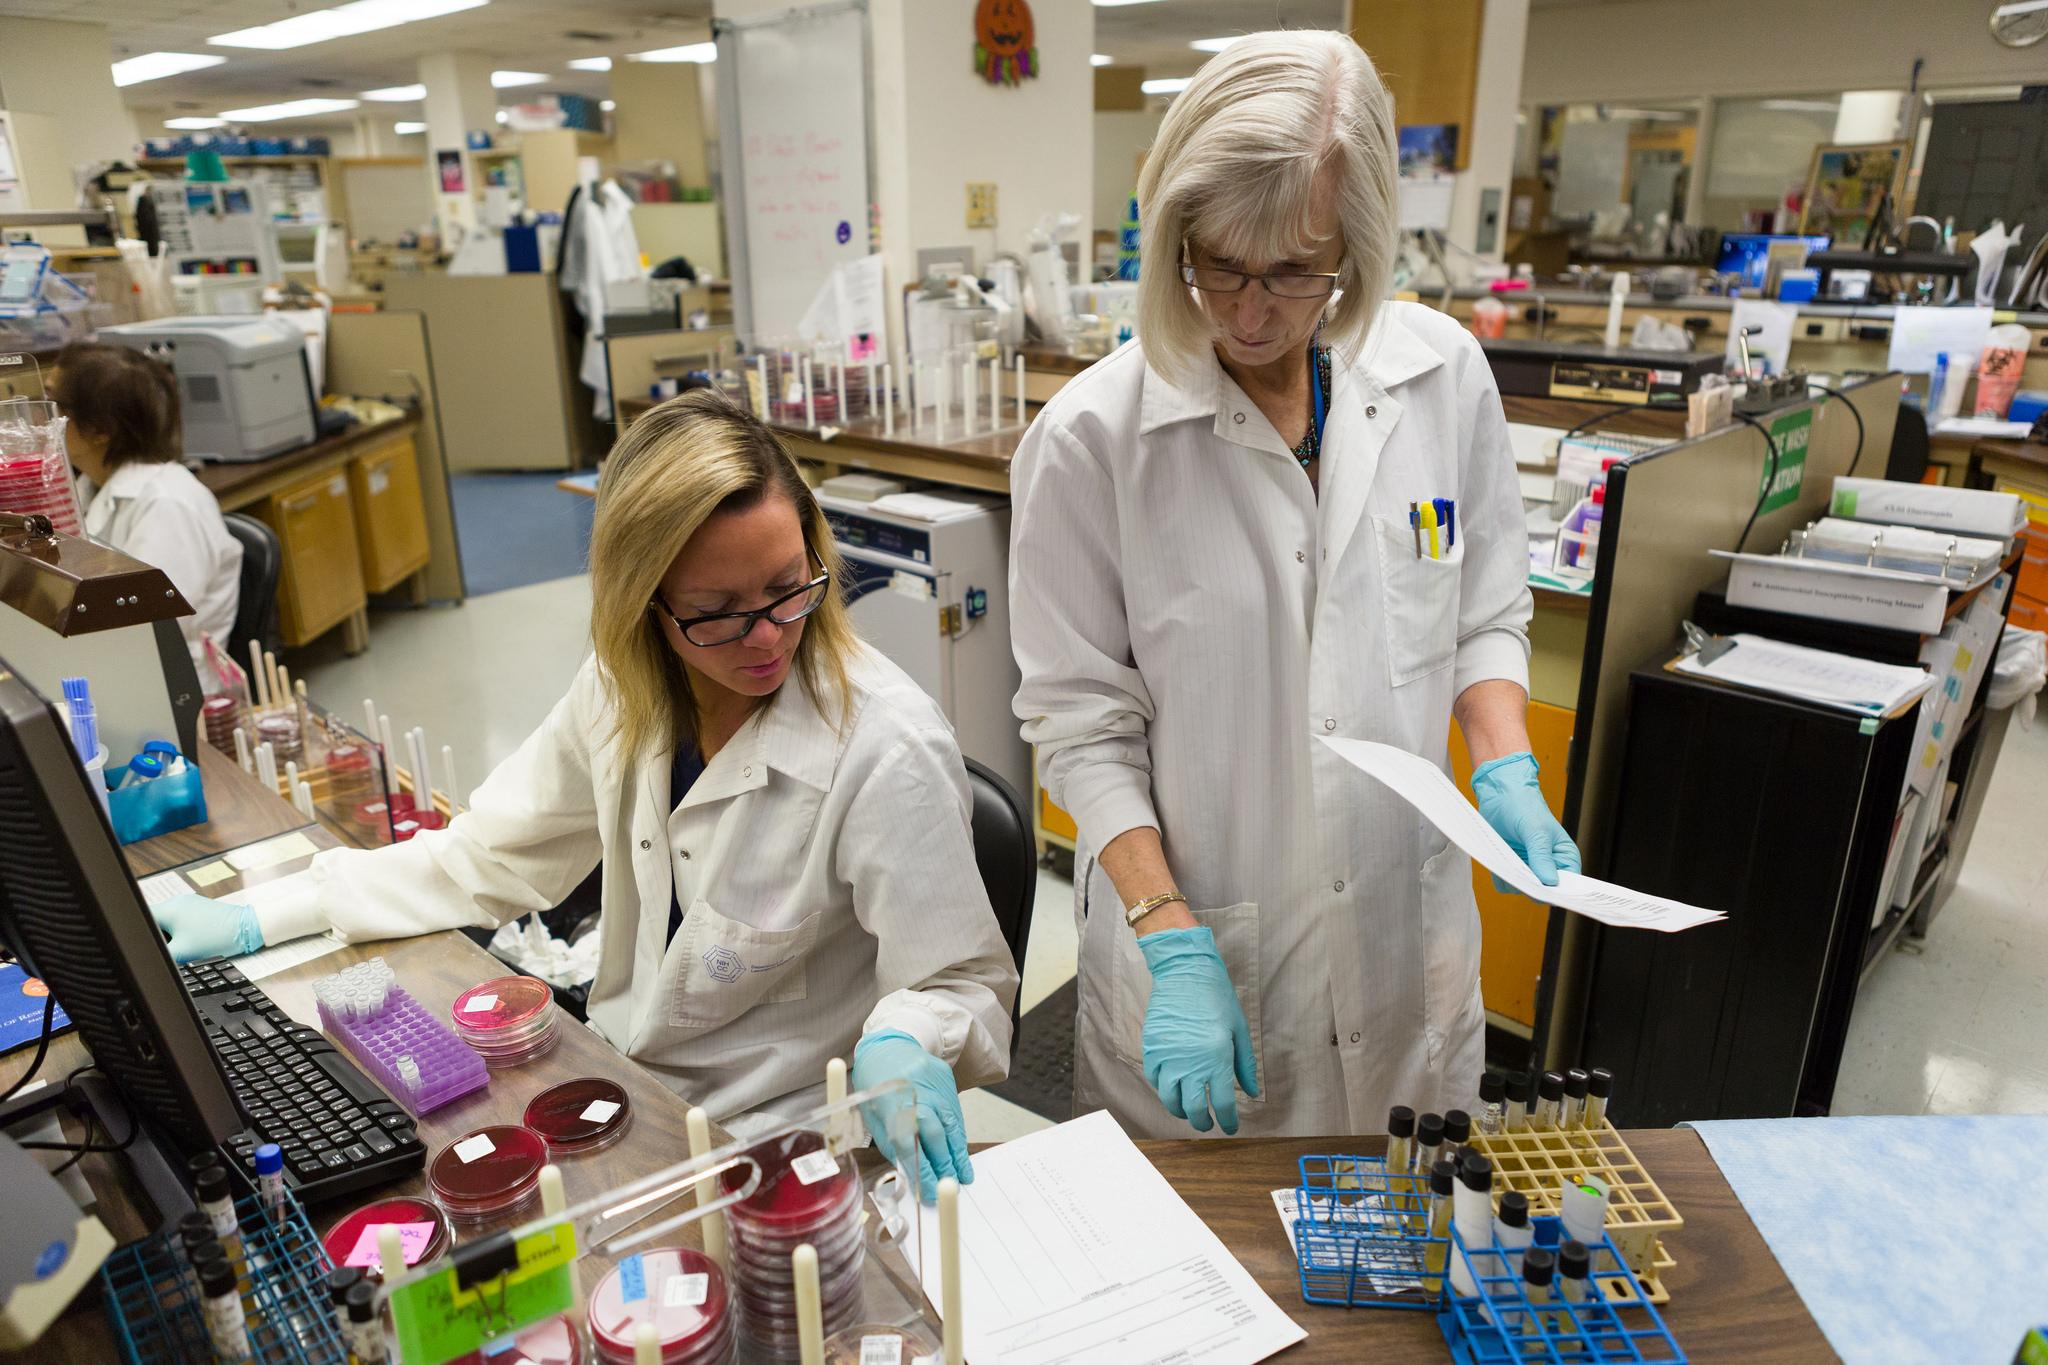 2 female scientists work in lab, one standing one sitting